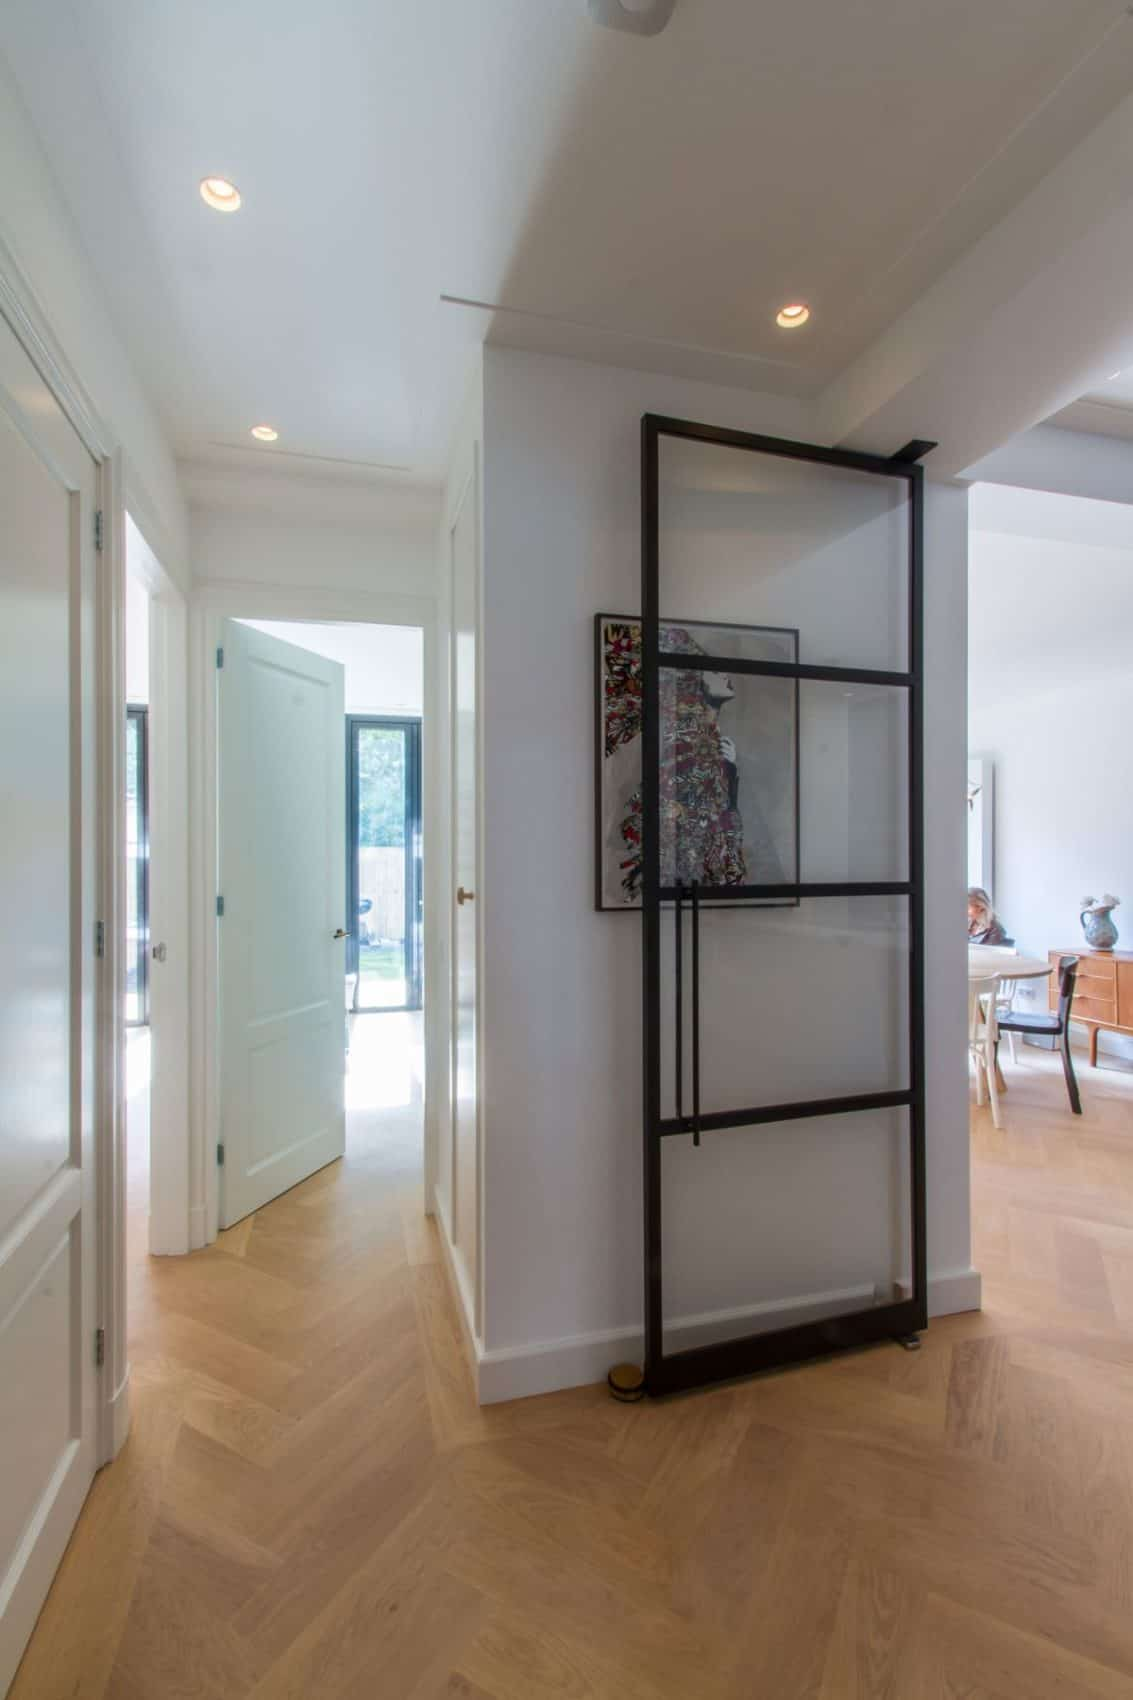 Cozy and Charming Space - Glass framed door and hardwood parquet floor